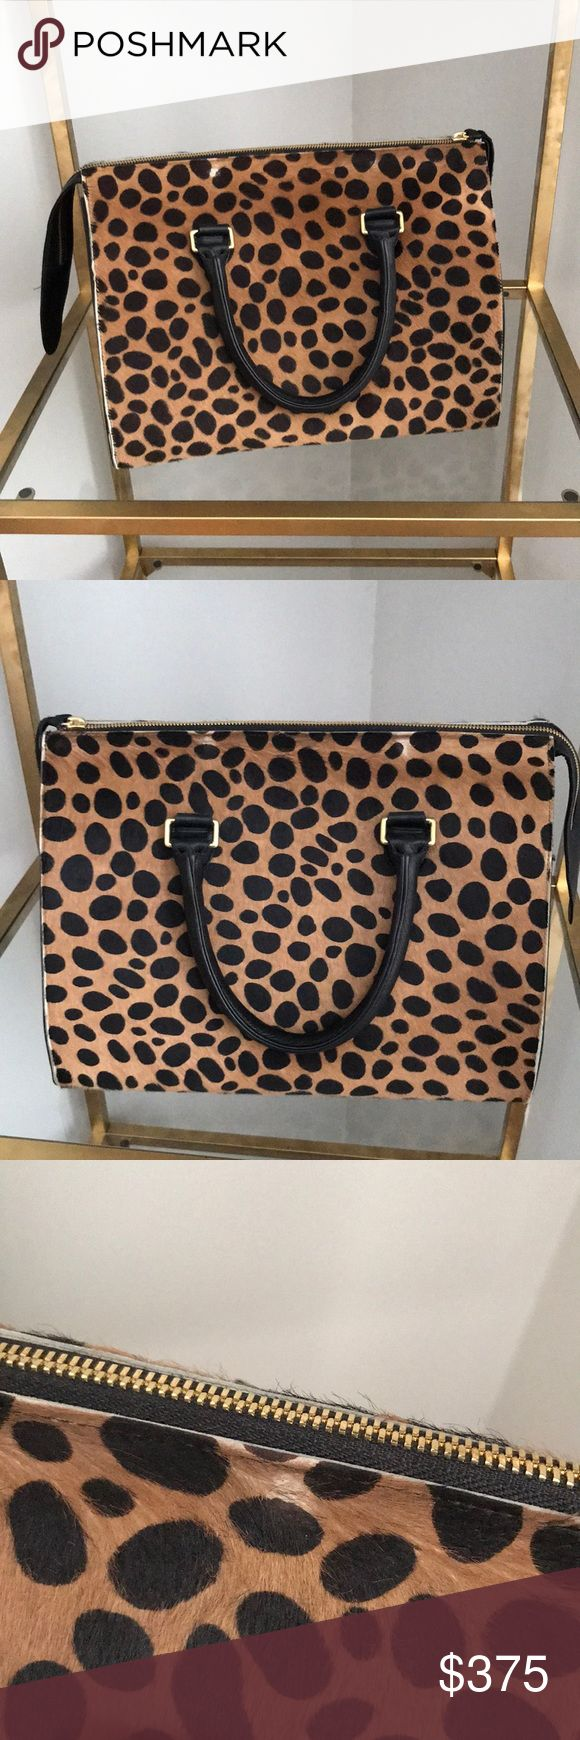 Clare V. Leopard Satchel Used leopard hair calf leather satchel. Inside is lined with denim canvas. Zipper pocket and 3 other open pockets. It can be worn 2 different ways as shown in pics. Please note there are 3 spots of wear on the hair calf that is from natural wear. All leather. There is no dust bag. Please be considerate when making offers. Clare Vivier Bags Satchels